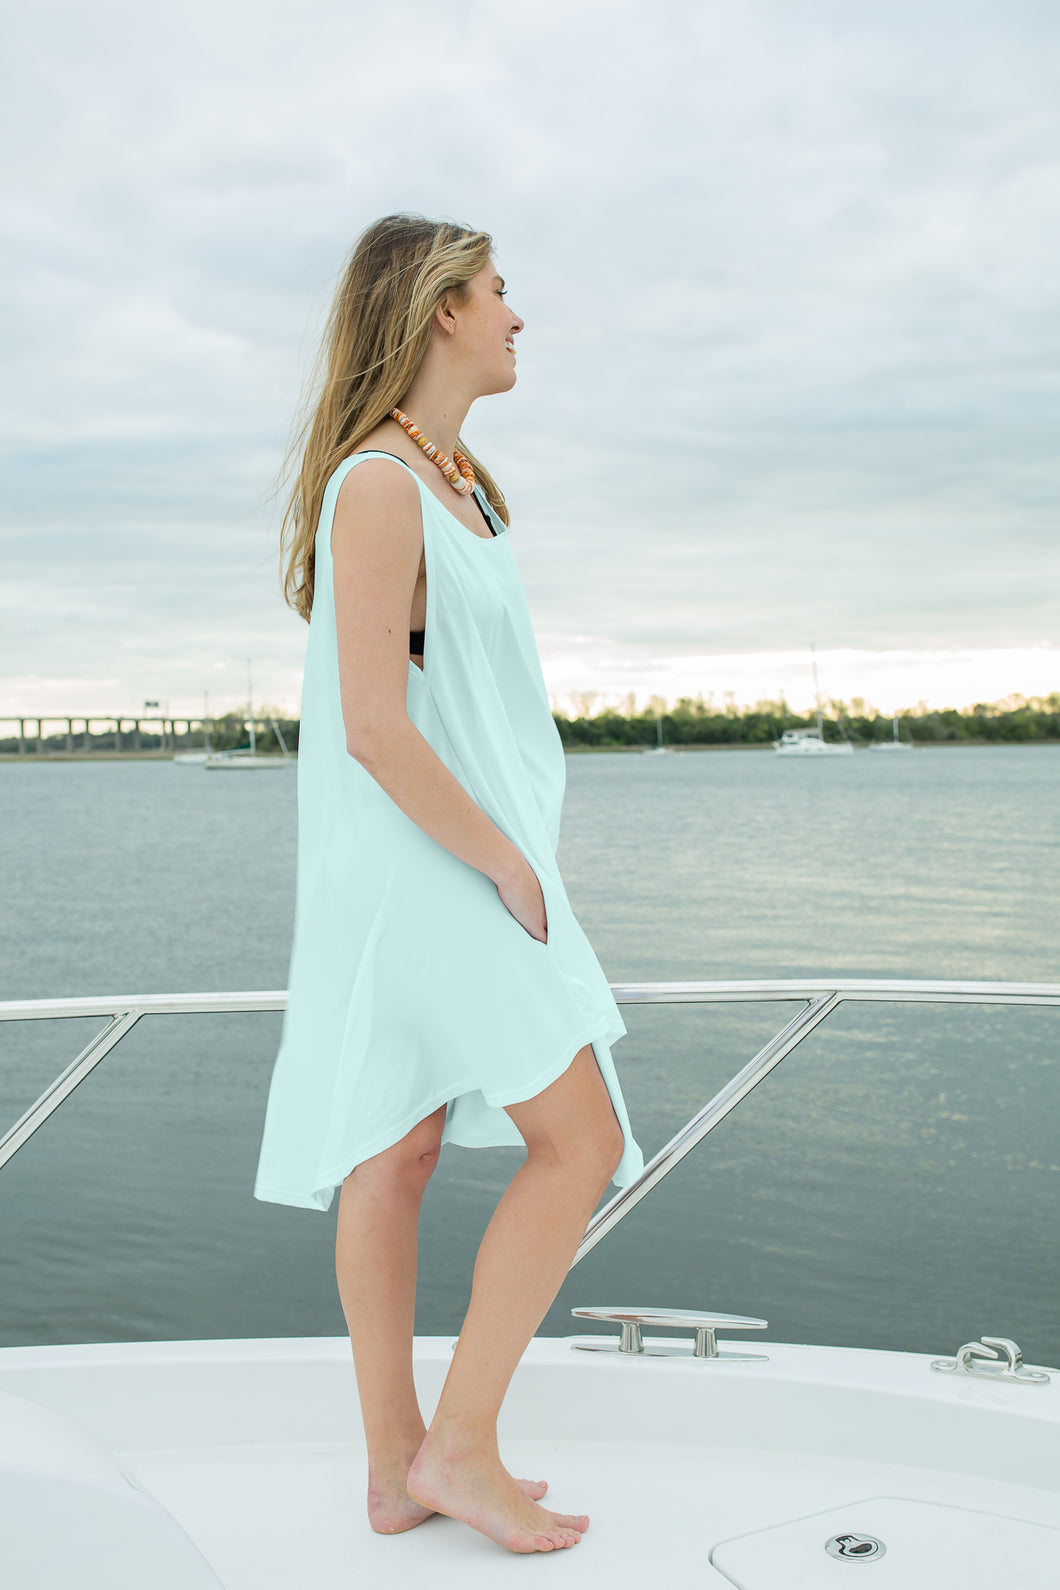 Sea Glass Green - Decked Out Dress